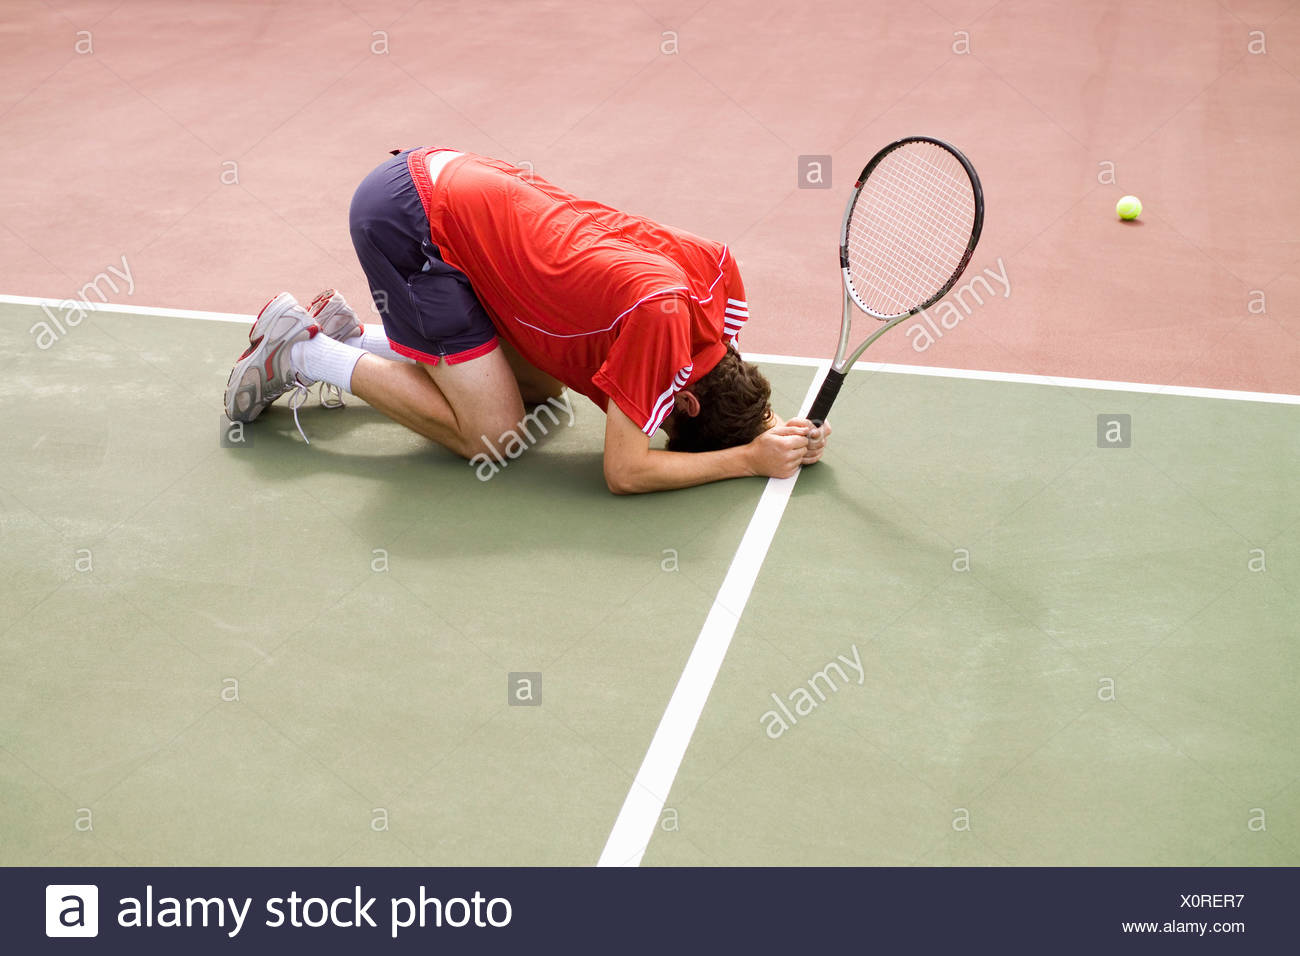 A tennis player crouching on the floor in defeat - Stock Image